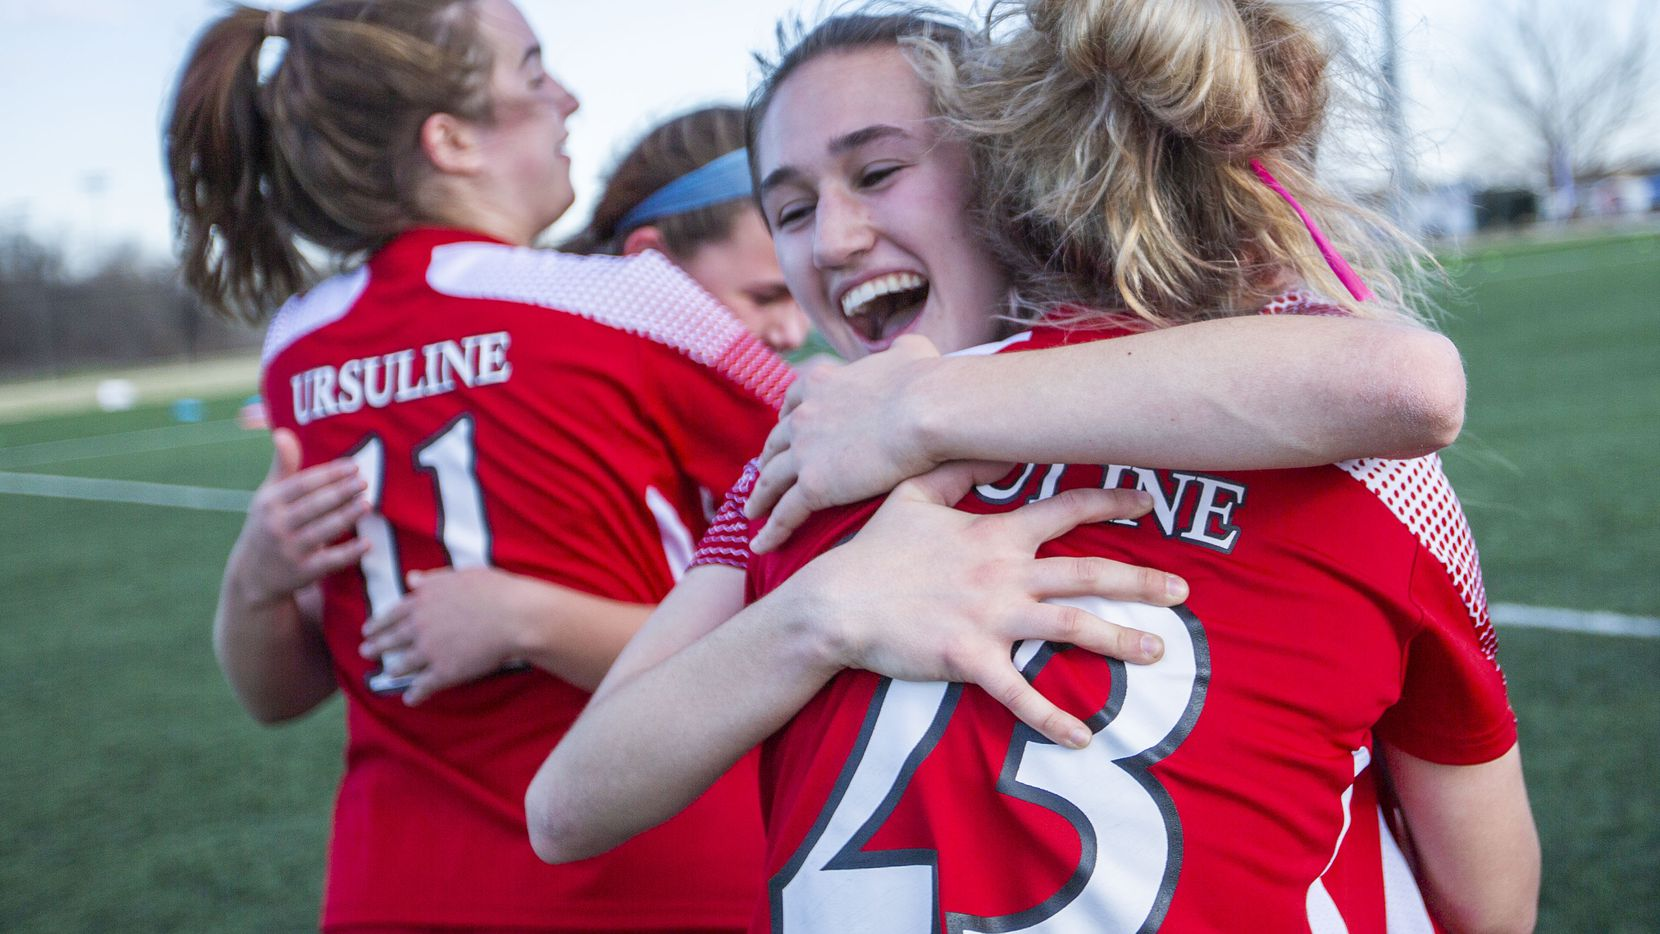 Ursuline's Bella Zanoni (3) hugs Juliet Moore (23) after their win against St. Agnes at their division 1 championship game at the Round Rock Multi Purpose Complex on March 5, 2021 in Round Rock, Texas. (Thao Nguyen/Special Contributor)